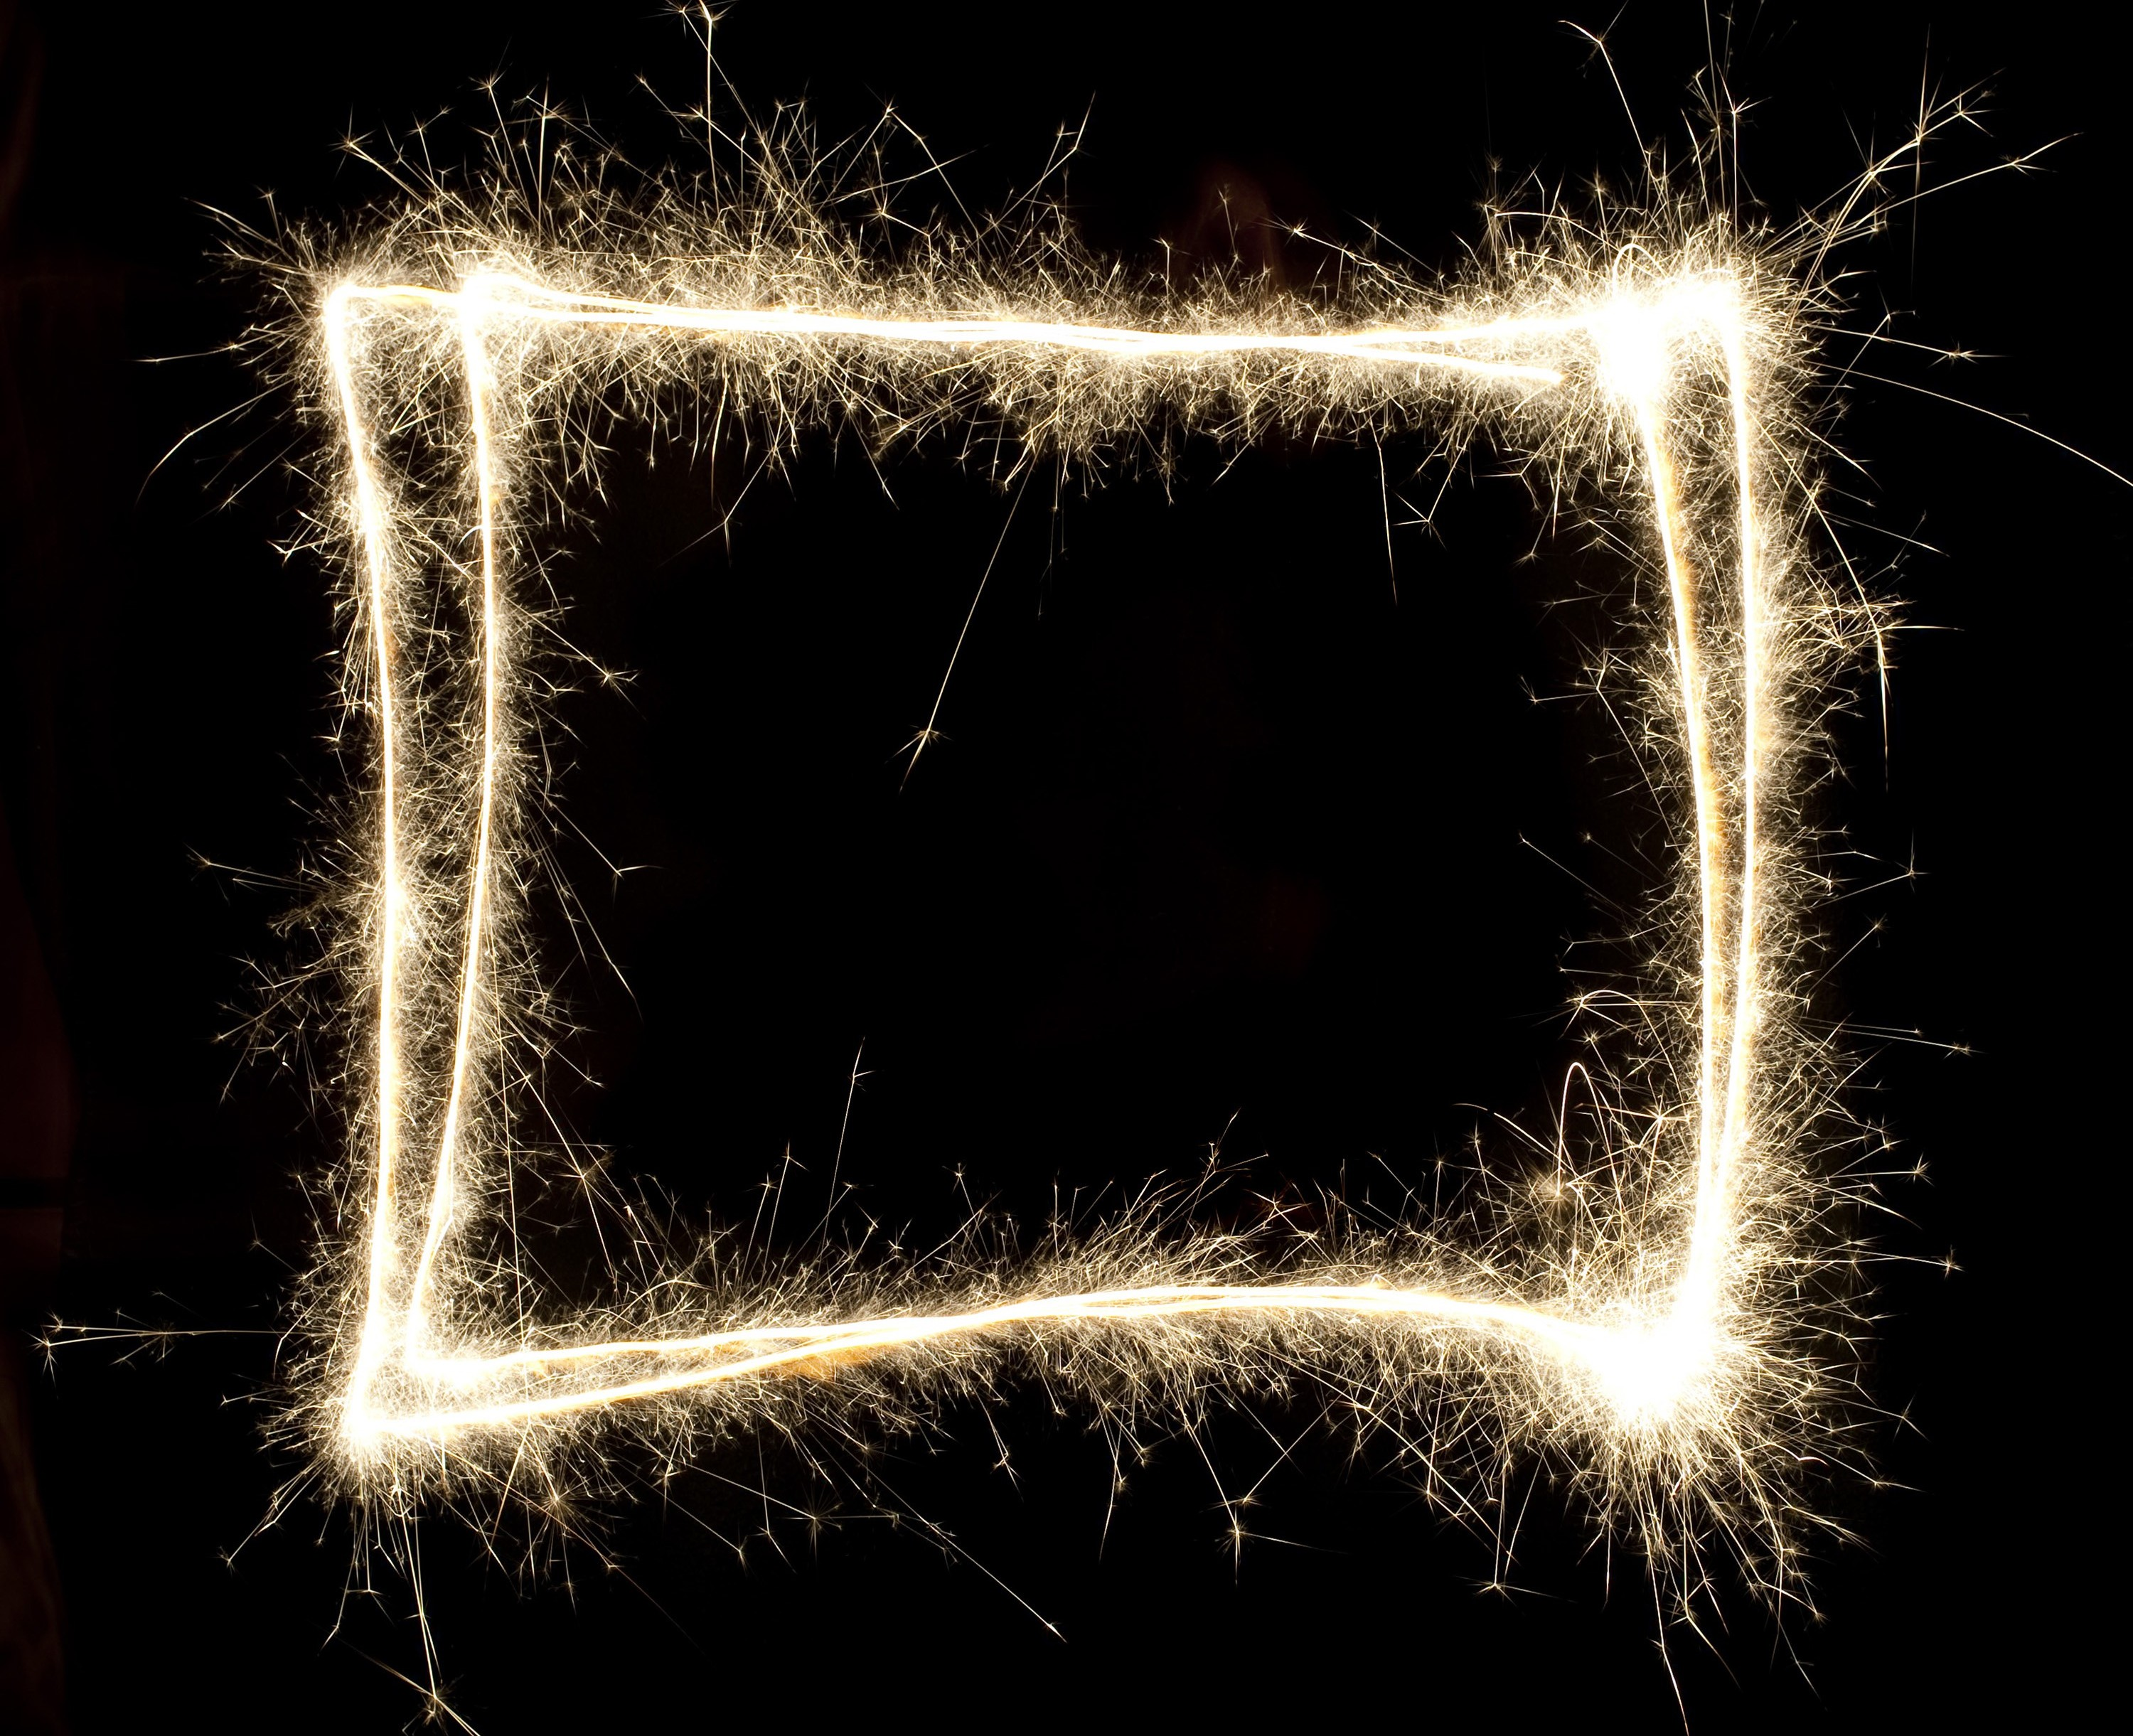 a rectangular frame of glowing sparks